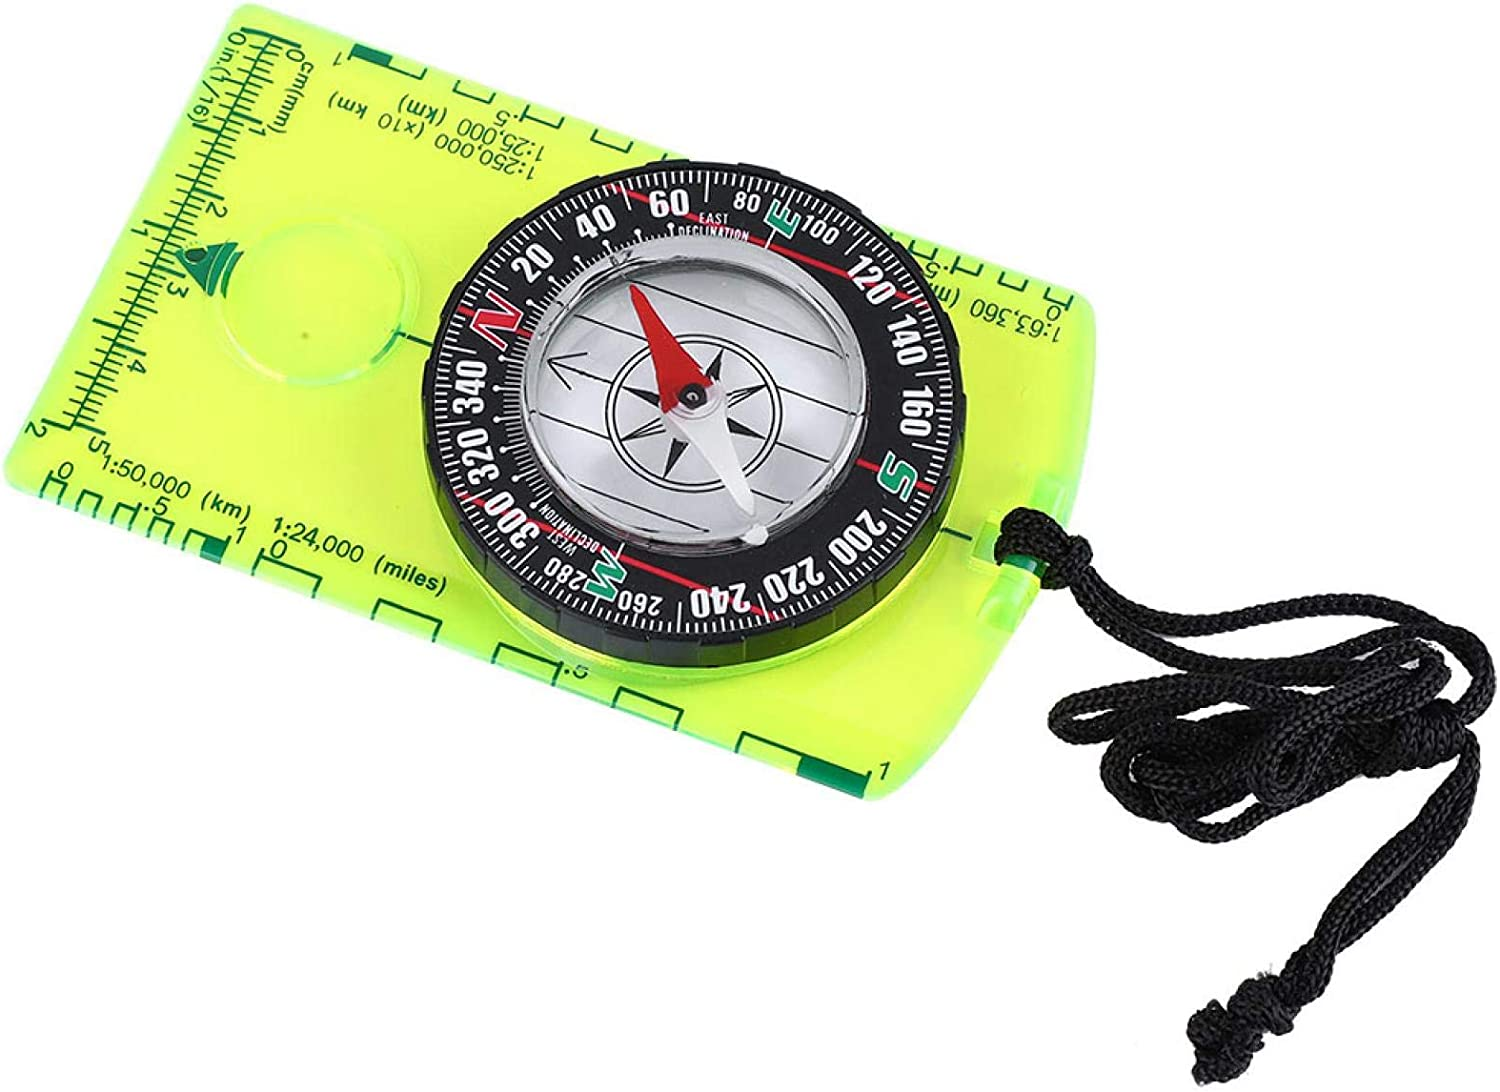 Spasm price Vertical Simple Compass Sale price Mini Kids Professional for Tool